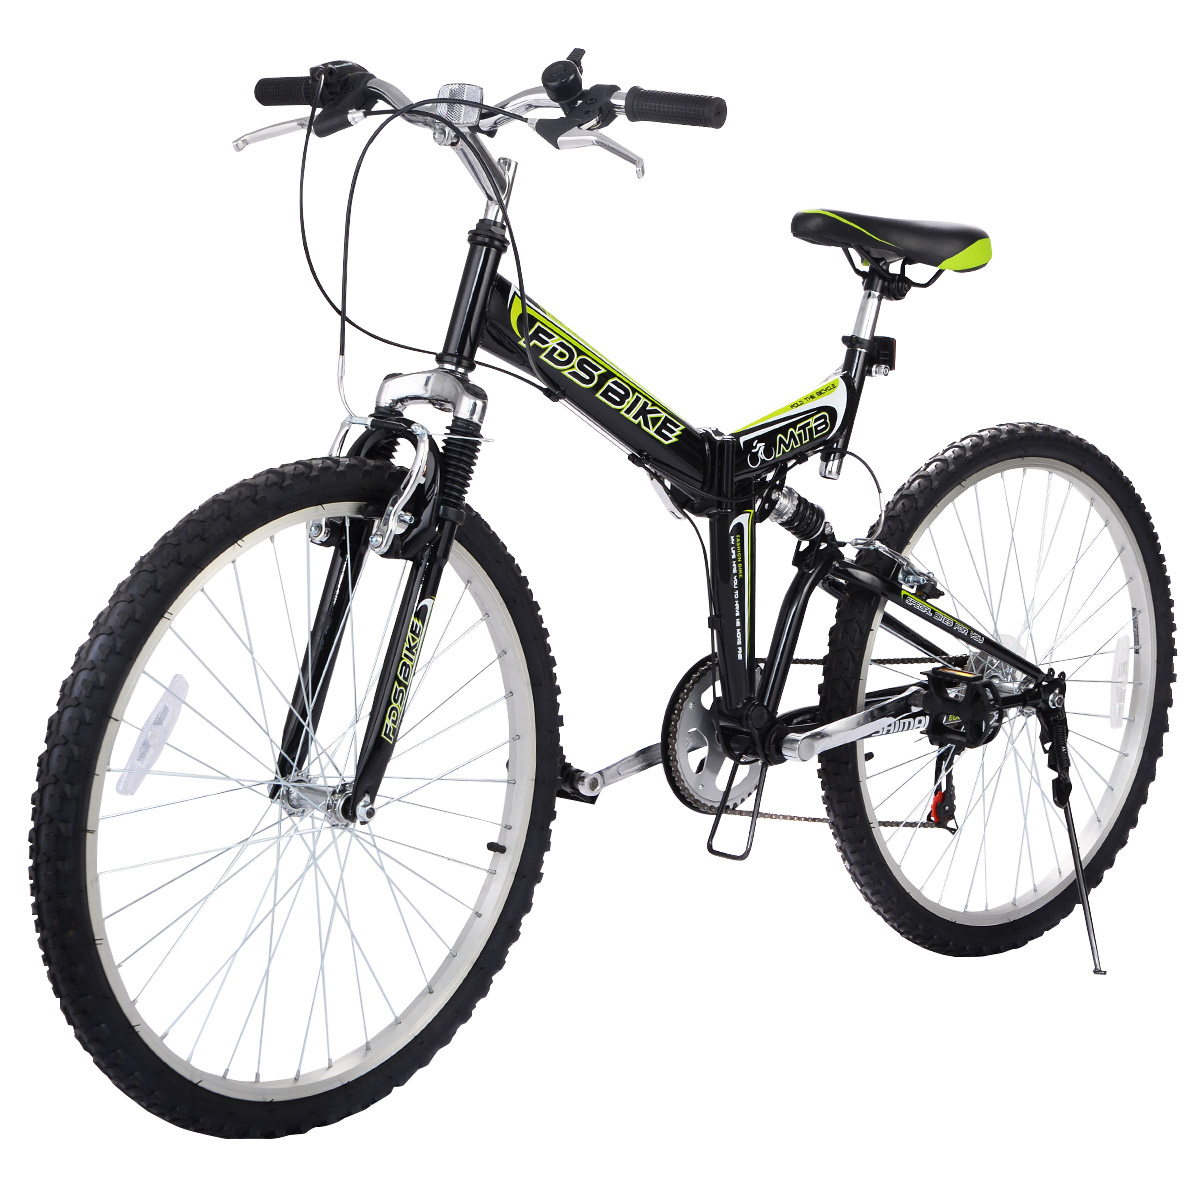 "Generic 26"" Folding 6 Speed Mountain Bike Bicycle Shimano..."